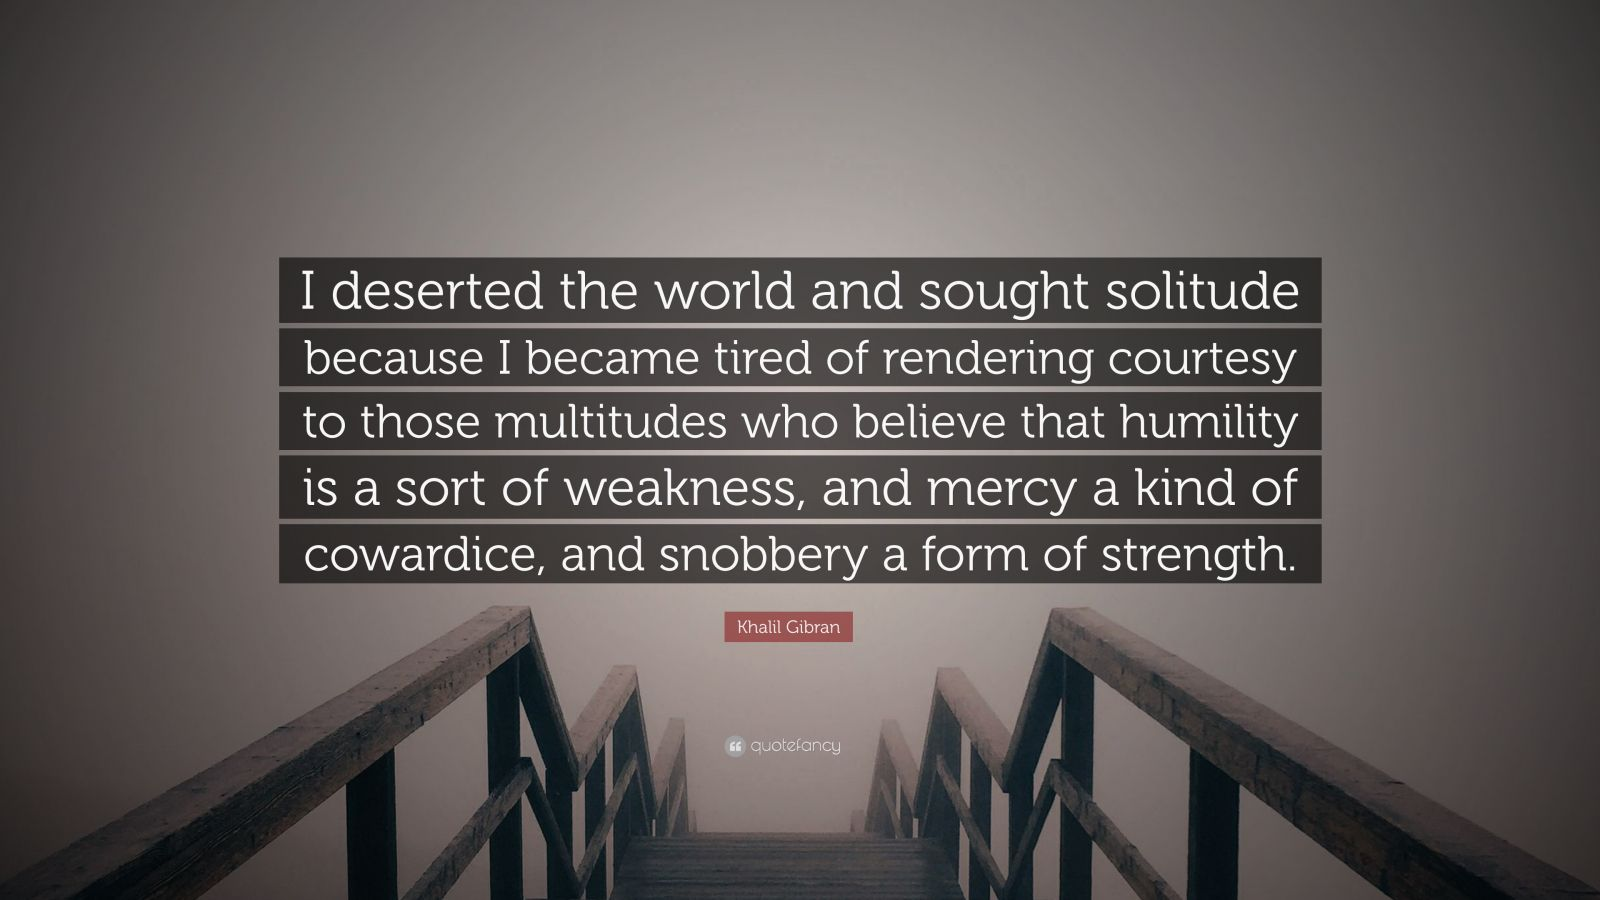 """Khalil Gibran Quote: """"I deserted the world and sought solitude because I became tired of rendering courtesy to those multitudes who believe that humility is a sort of weakness, and mercy a kind of cowardice, and snobbery a form of strength."""""""